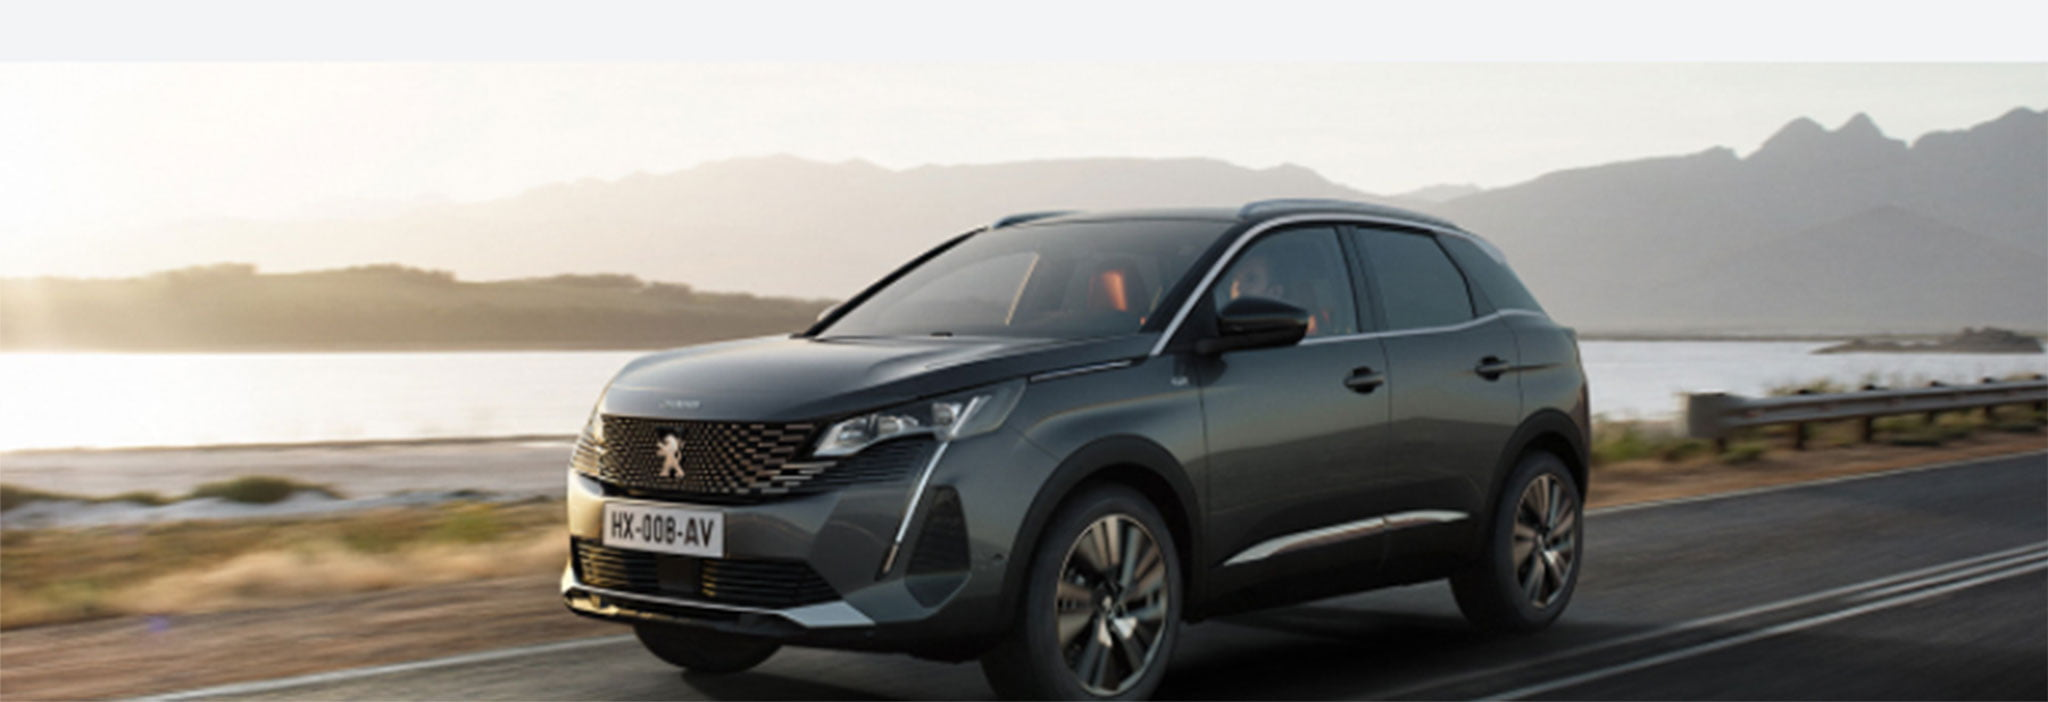 The new Peugeot 3008 and 5008 are already circulating - Peumóvil